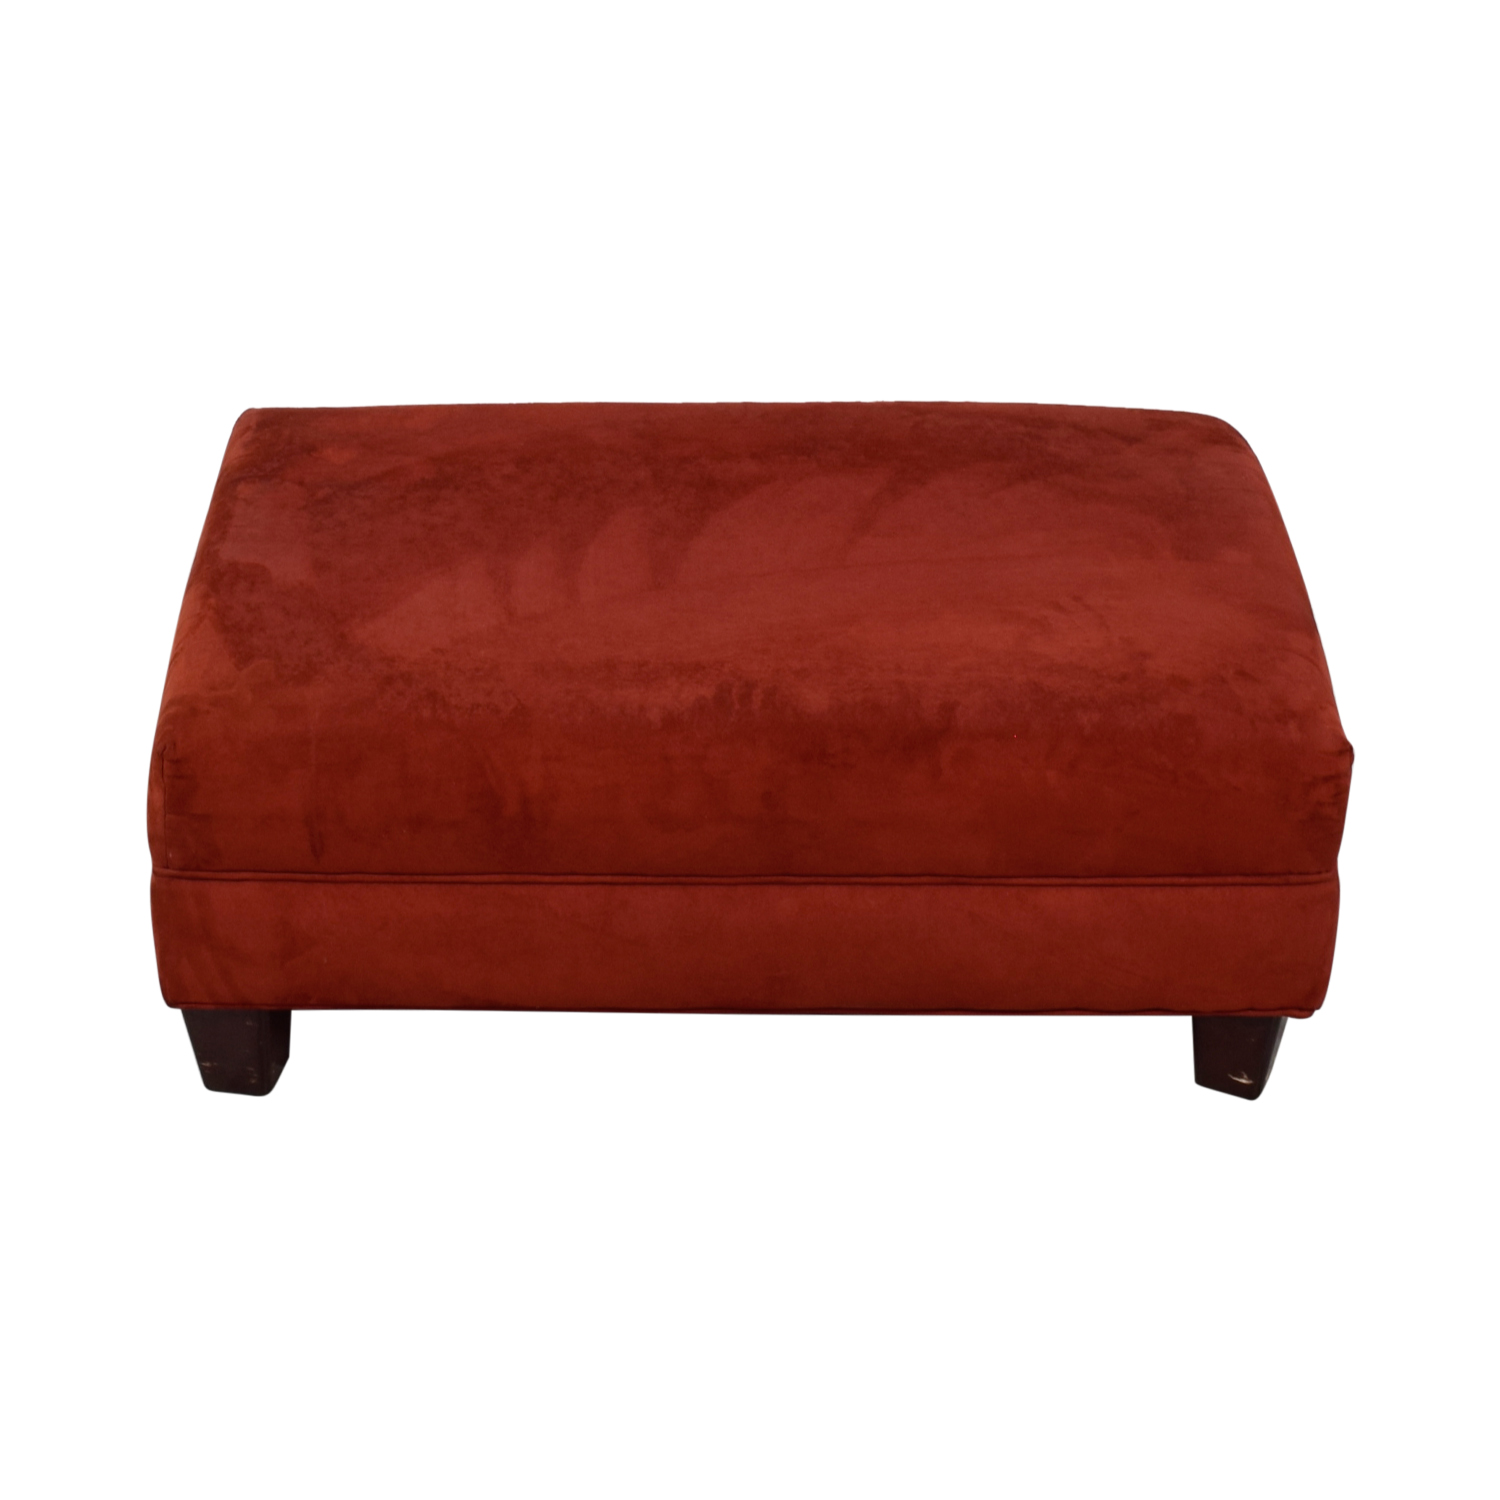 Red Ottoman dimensions